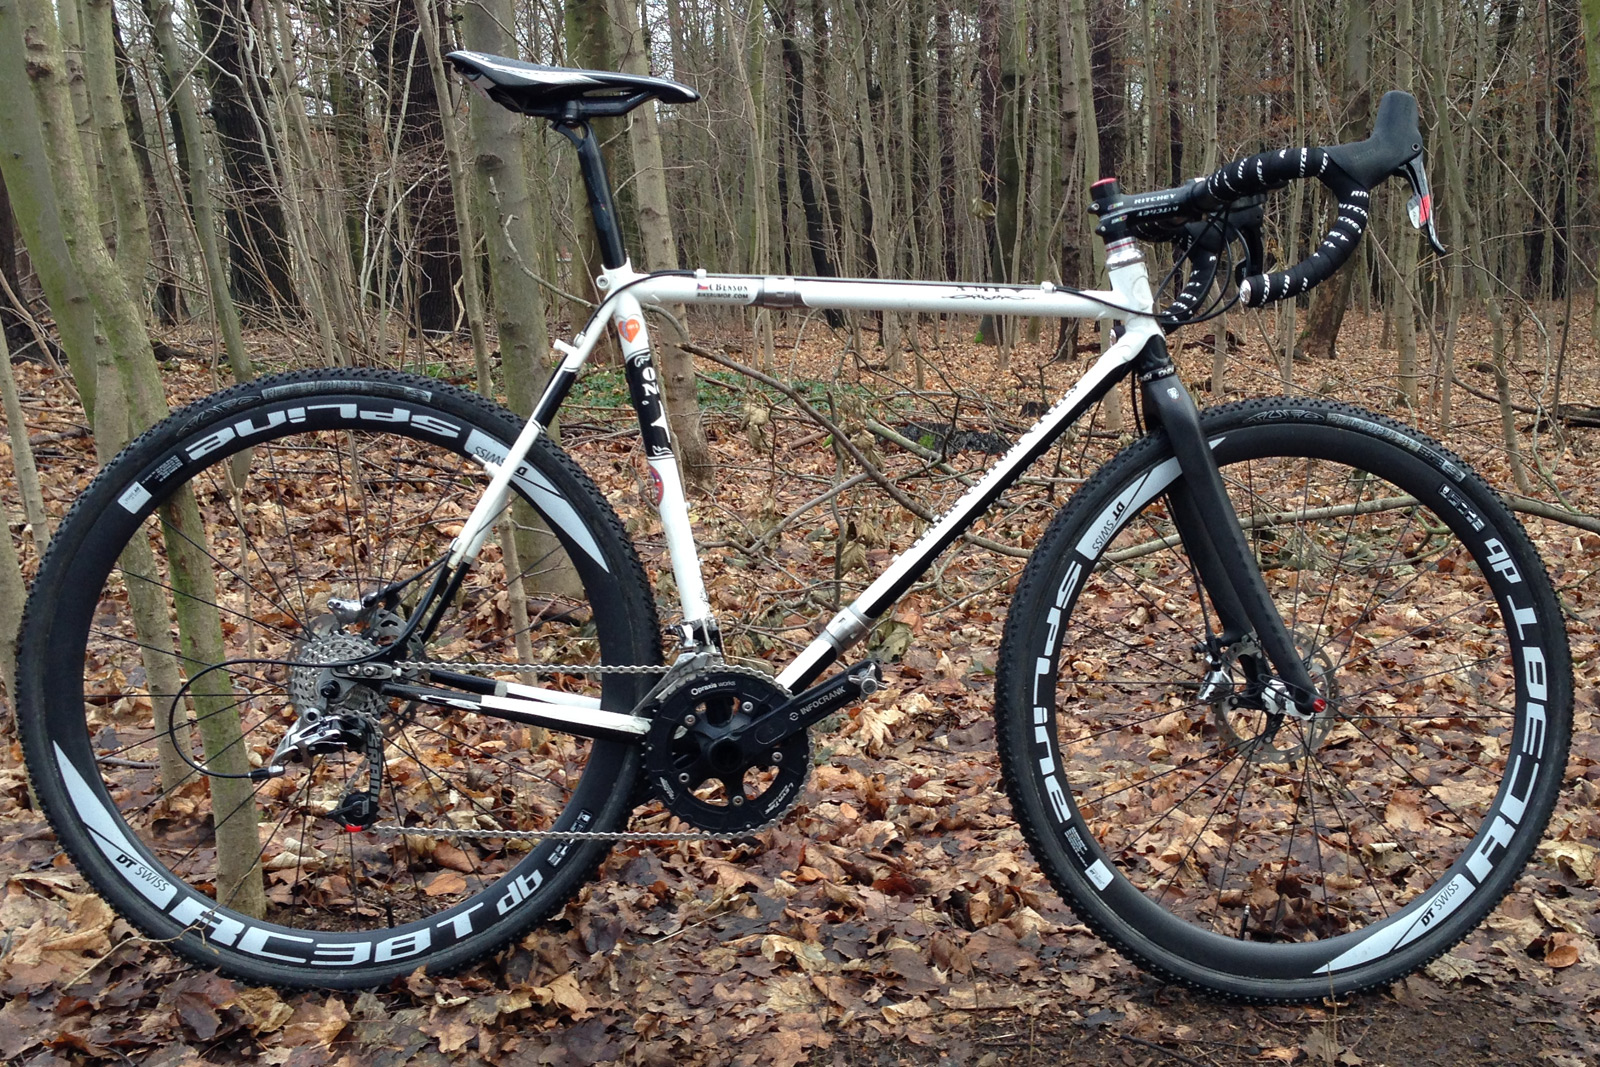 cross fork muslim singles Their cross fork specs all seem good except that the 160mm rotor max  bikes: tandems: calfee dragonfly s&s, fandango 29er mtb singles: specialized tarmac sl4 .